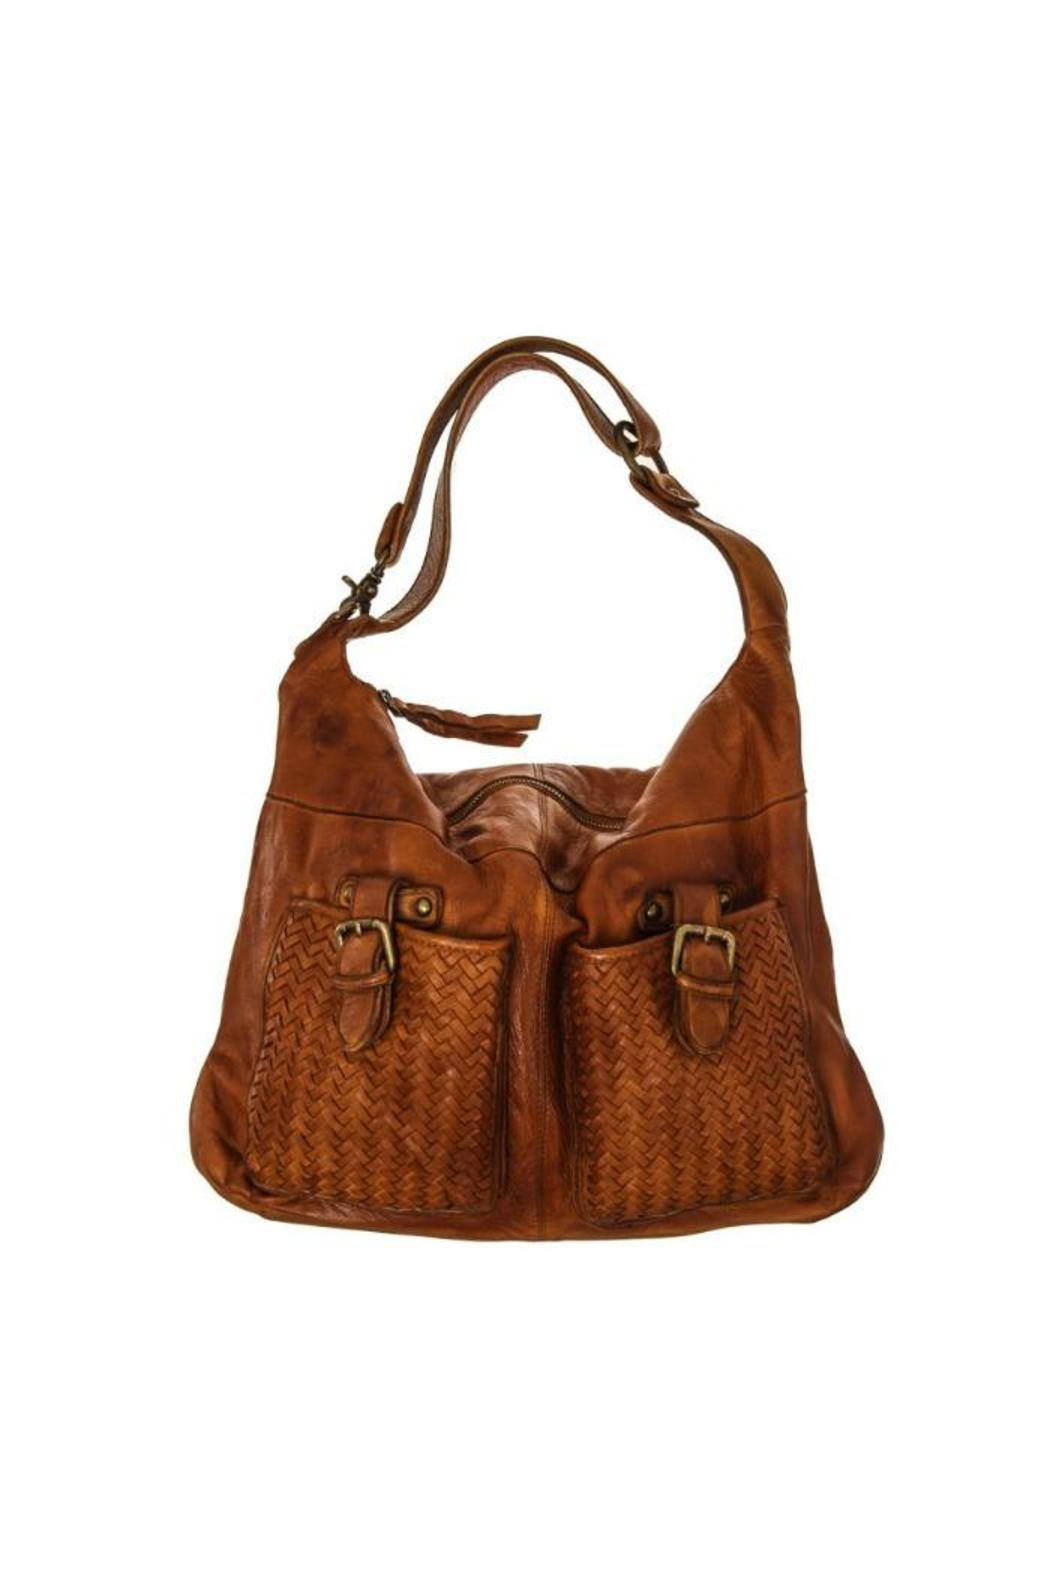 c17082c82075 Tano Woven Bag from Pittsburgh by Roberta Weissburg Leathers ...